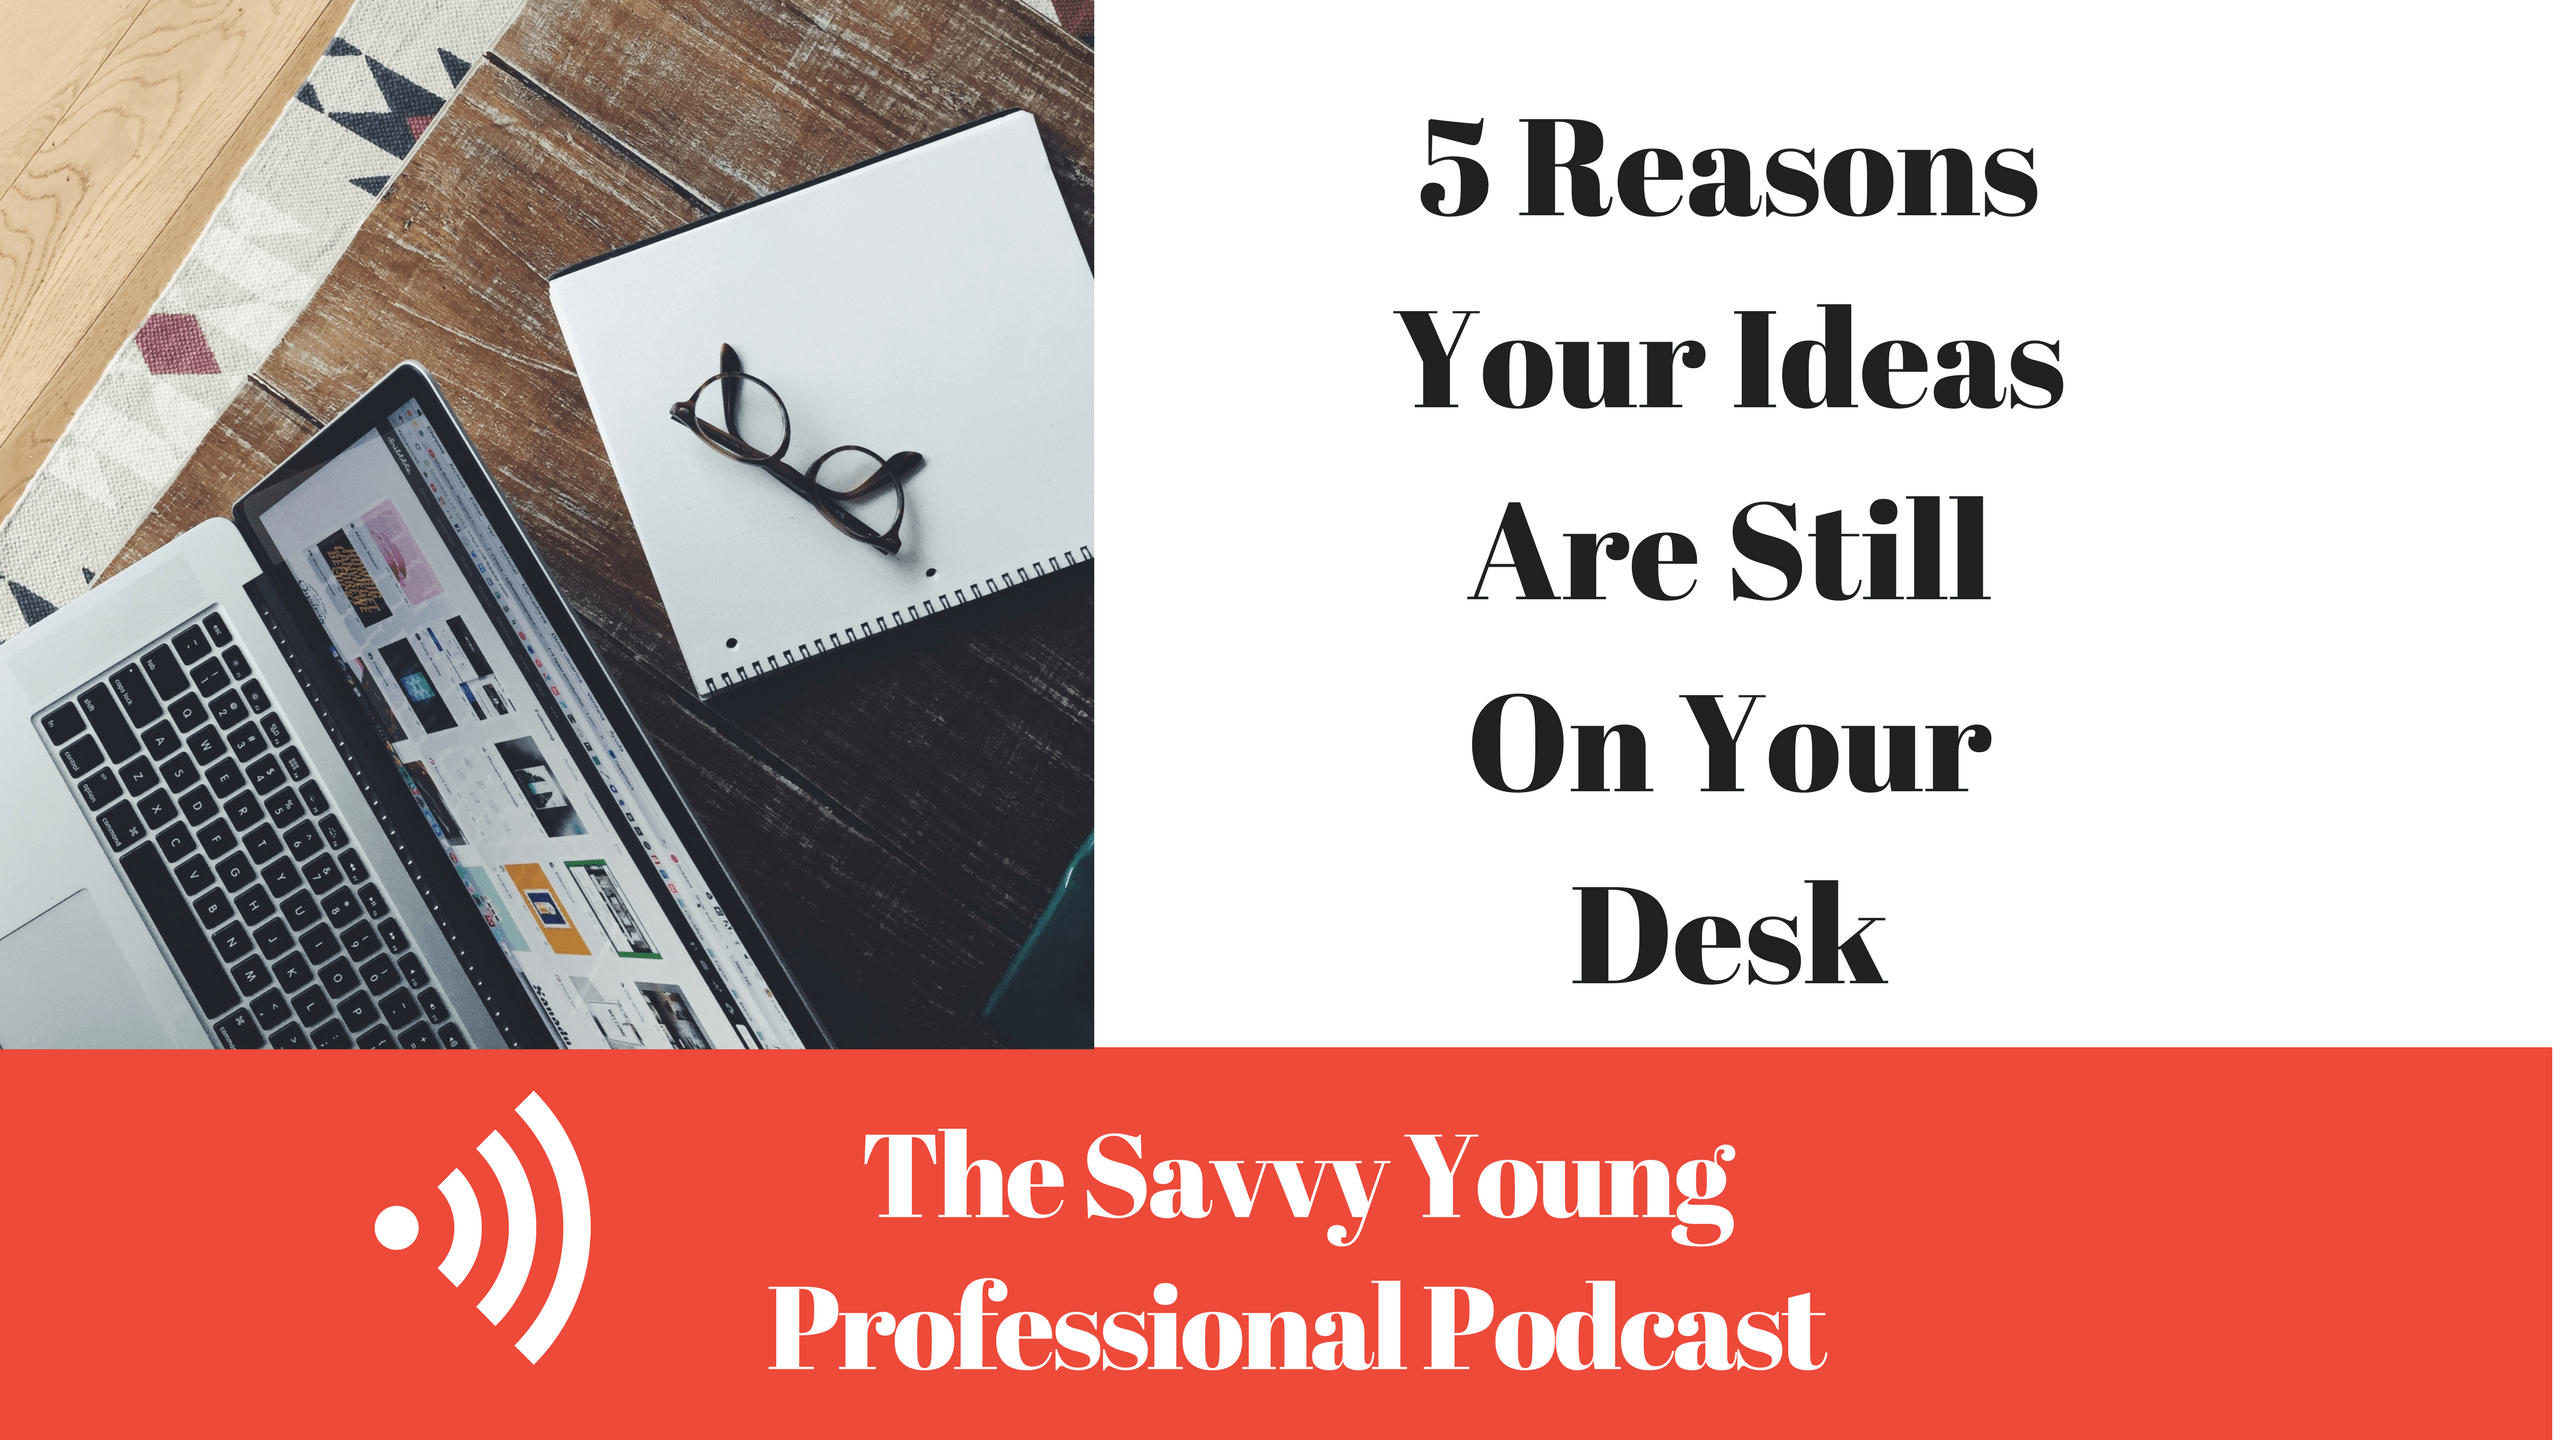 podcast-10-5-reasons-ideas-still-desk